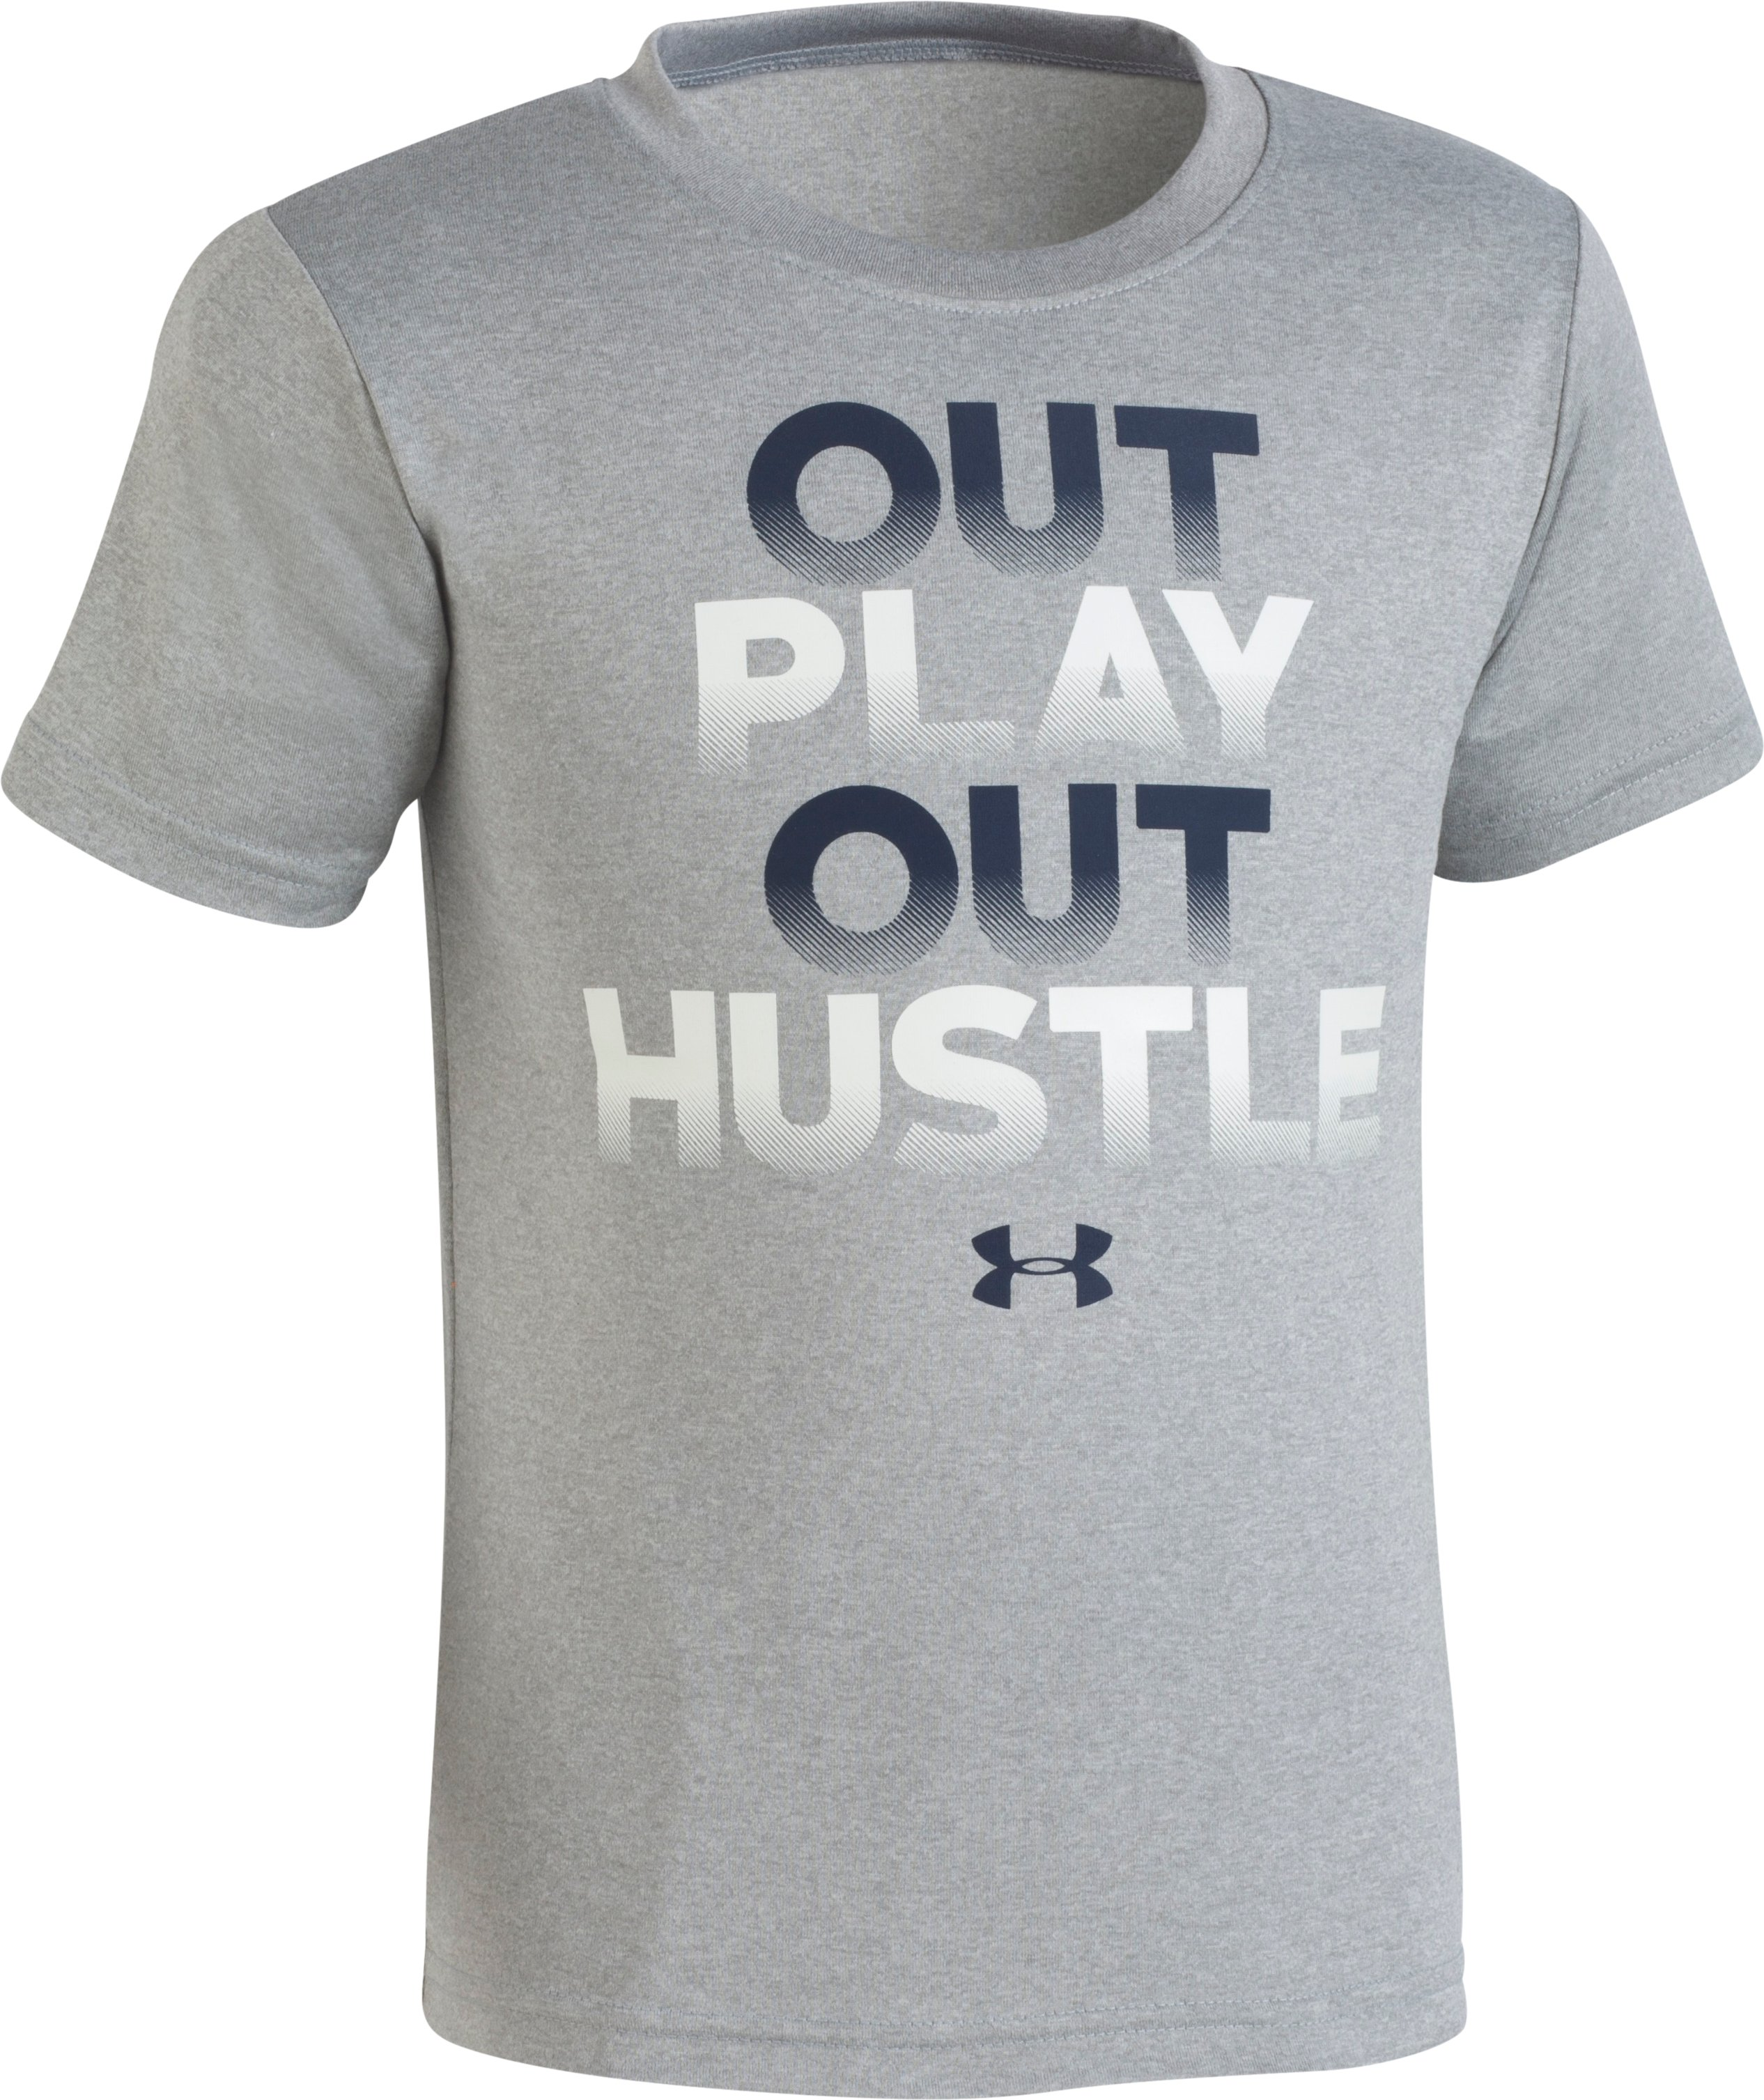 Boys' Toddler UA Out Play Out Hustle T-Shirt , STEEL MEDIUM HEATHER, zoomed